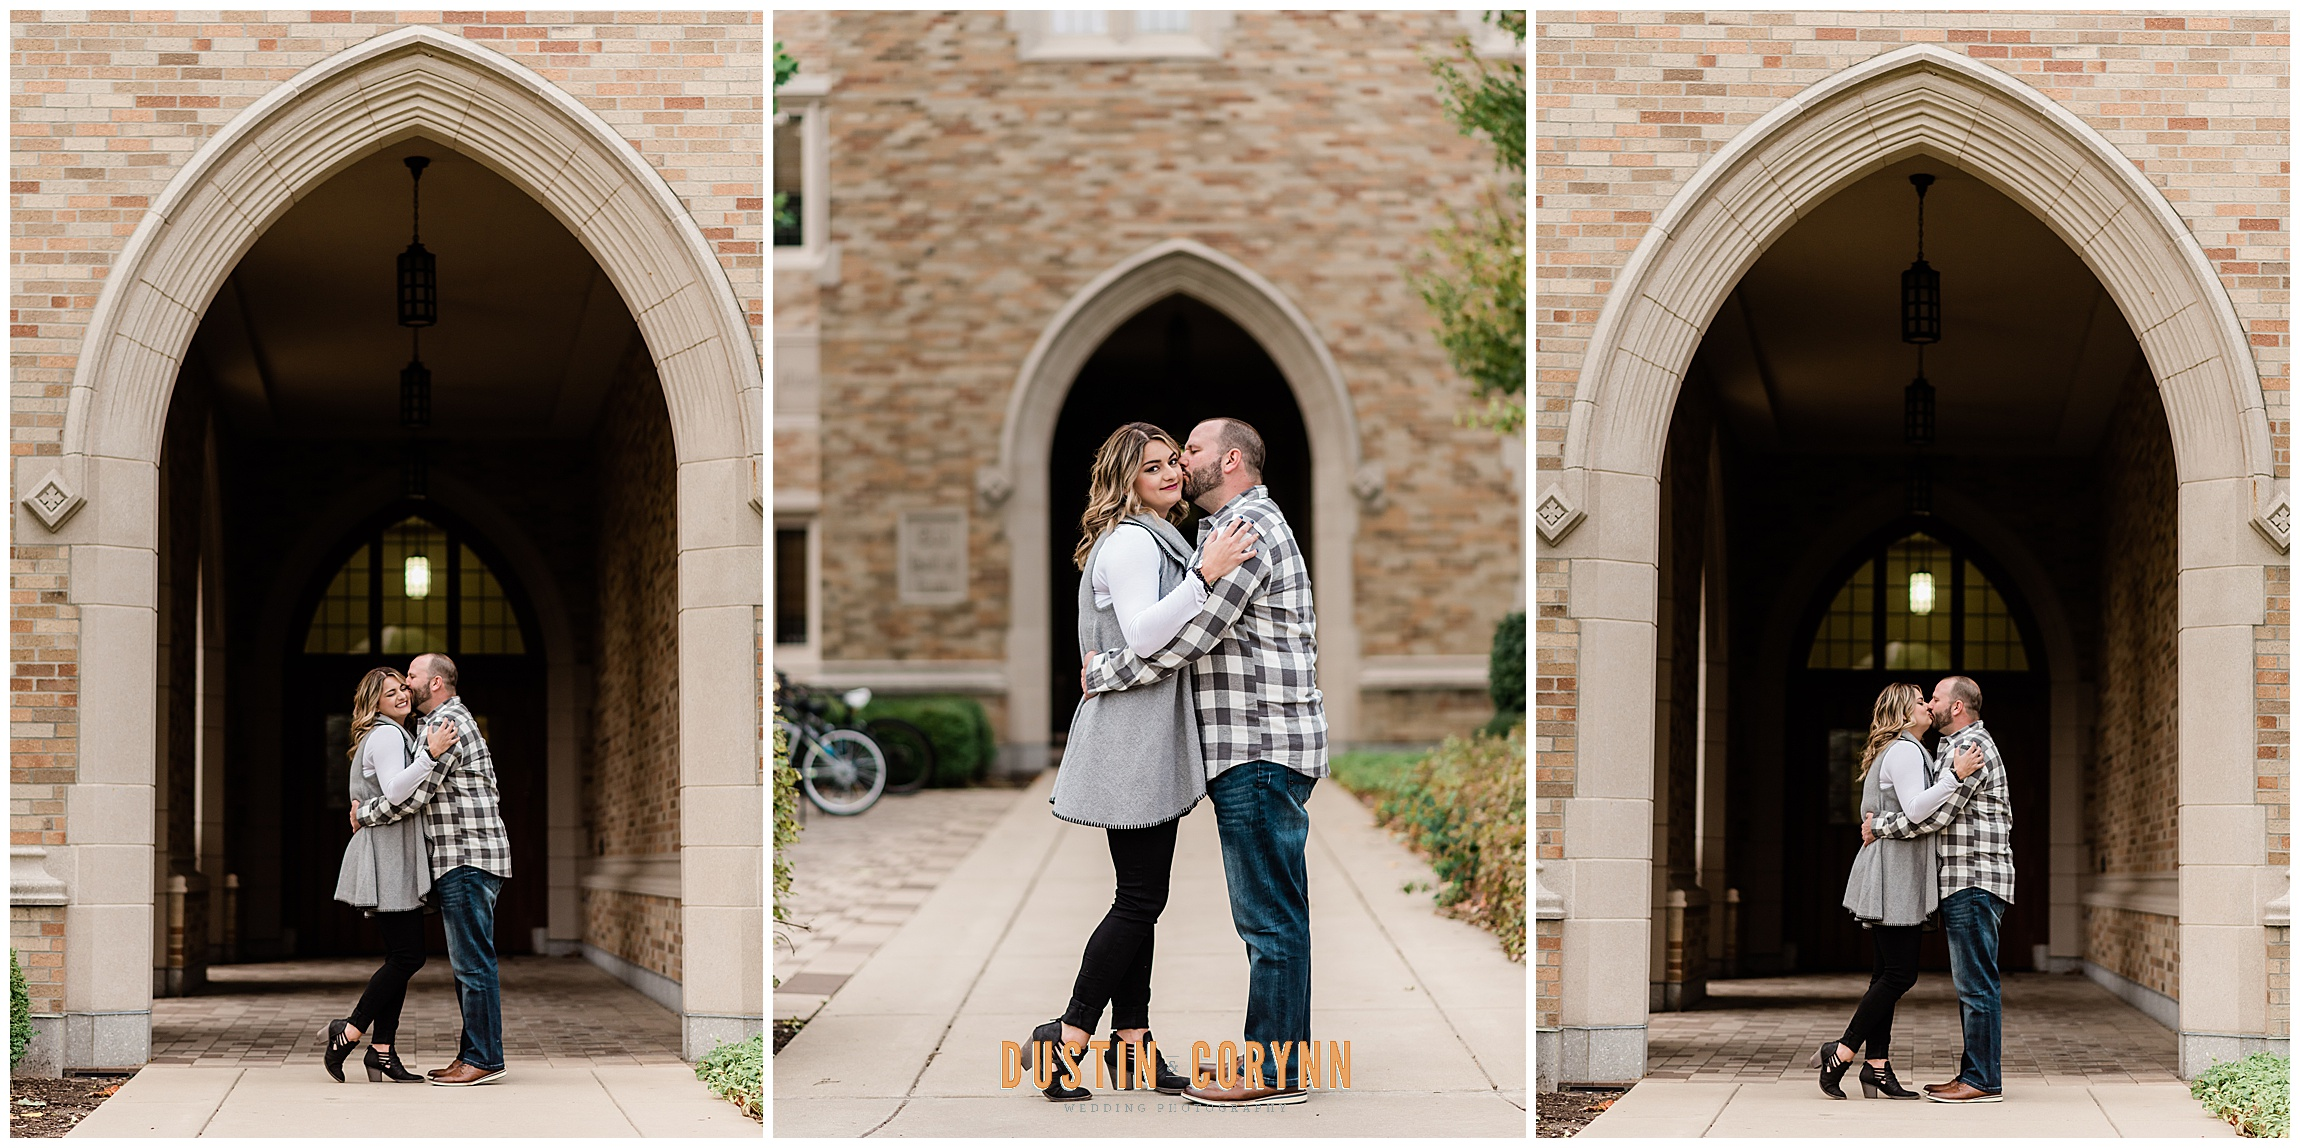 Engagement Photos at Notre Dame Law Building